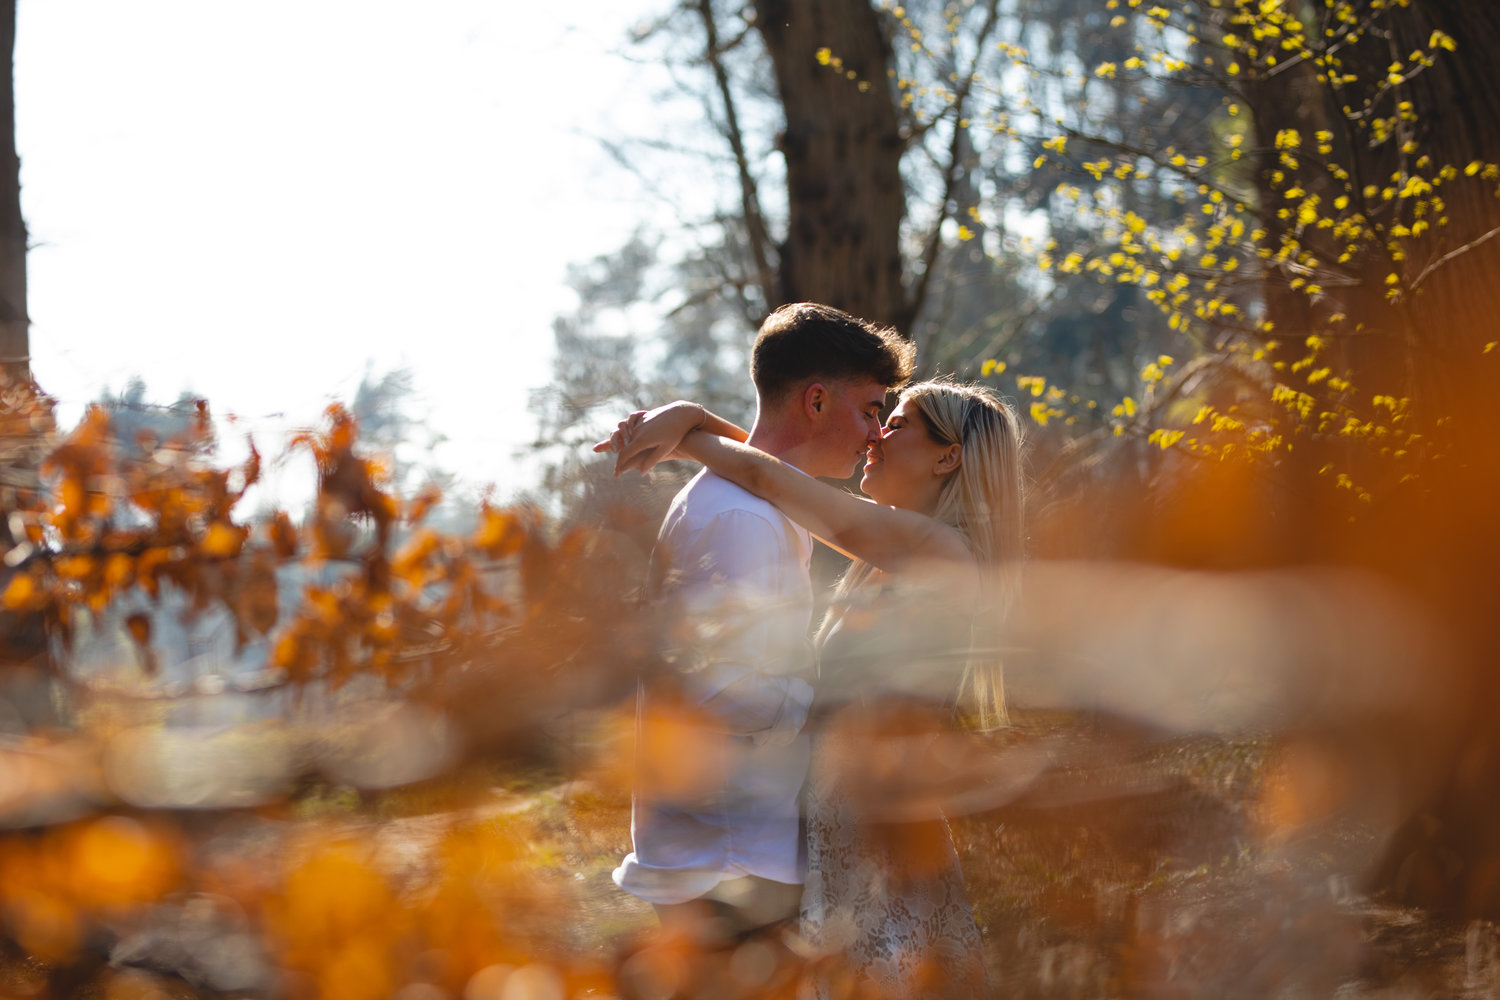 Image: Simon Watson Photography & Race Wedding Videography team up to look at the idea of photography and videography working together on your wedding day, whilst still having some time for fun and giggles along the way too!